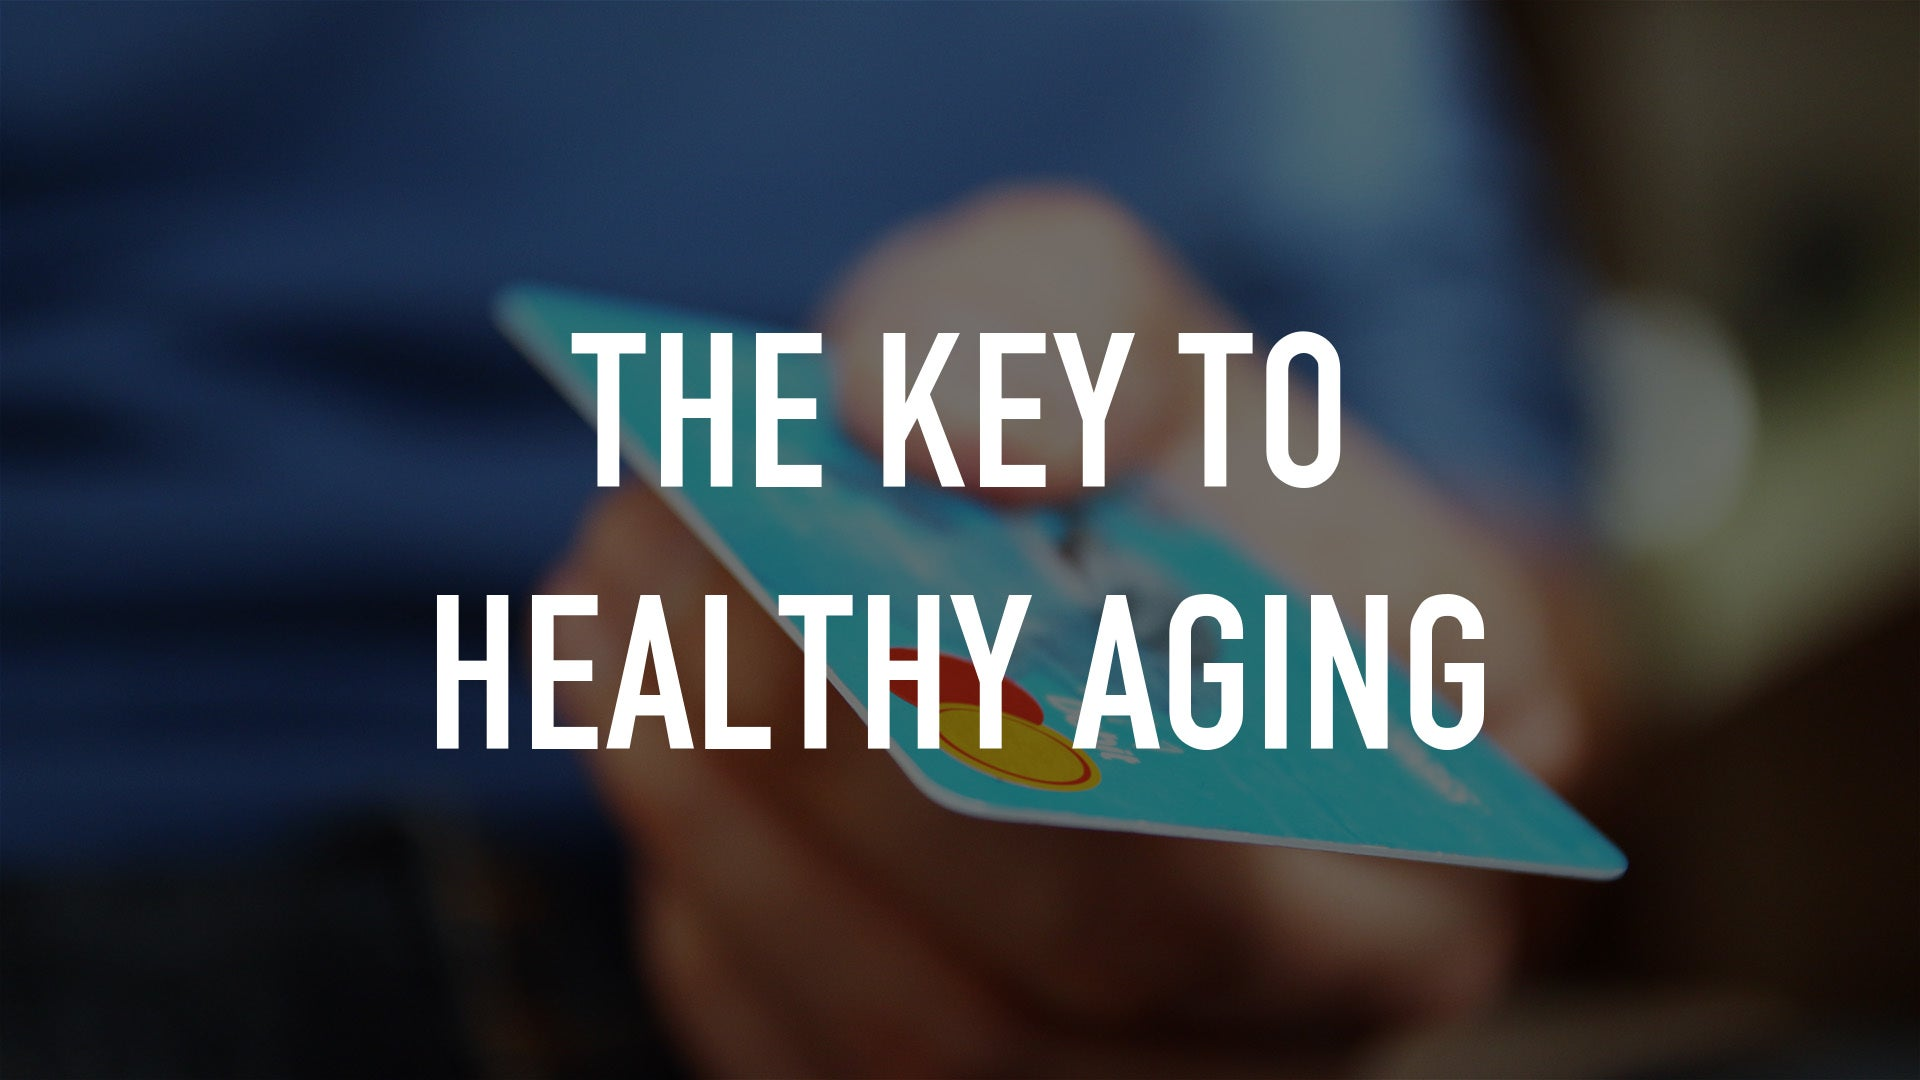 The Key to Healthy Aging